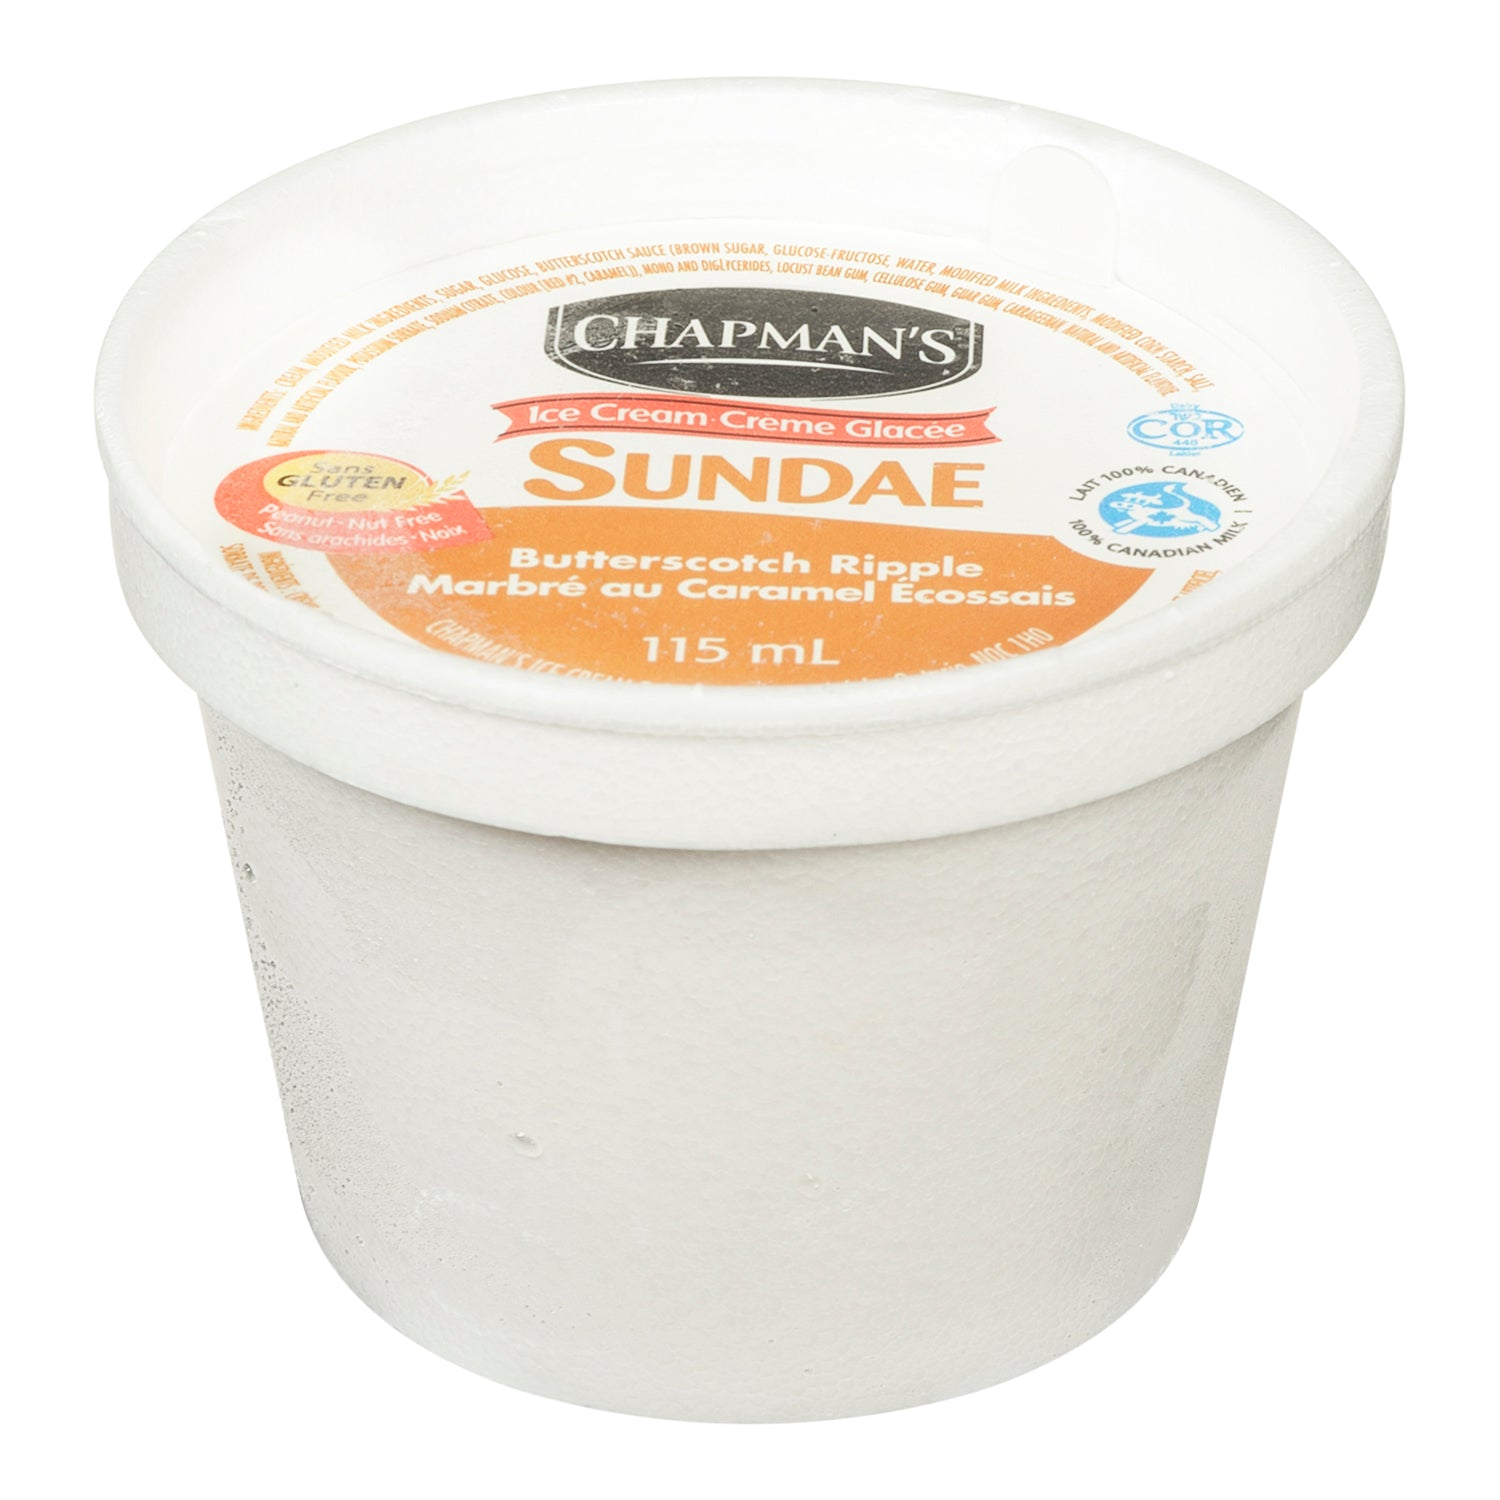 Chapman's Frozen Butterscotch Ripple Ice Cream Cups 115 ml - 24 Pack [$0.54/each]